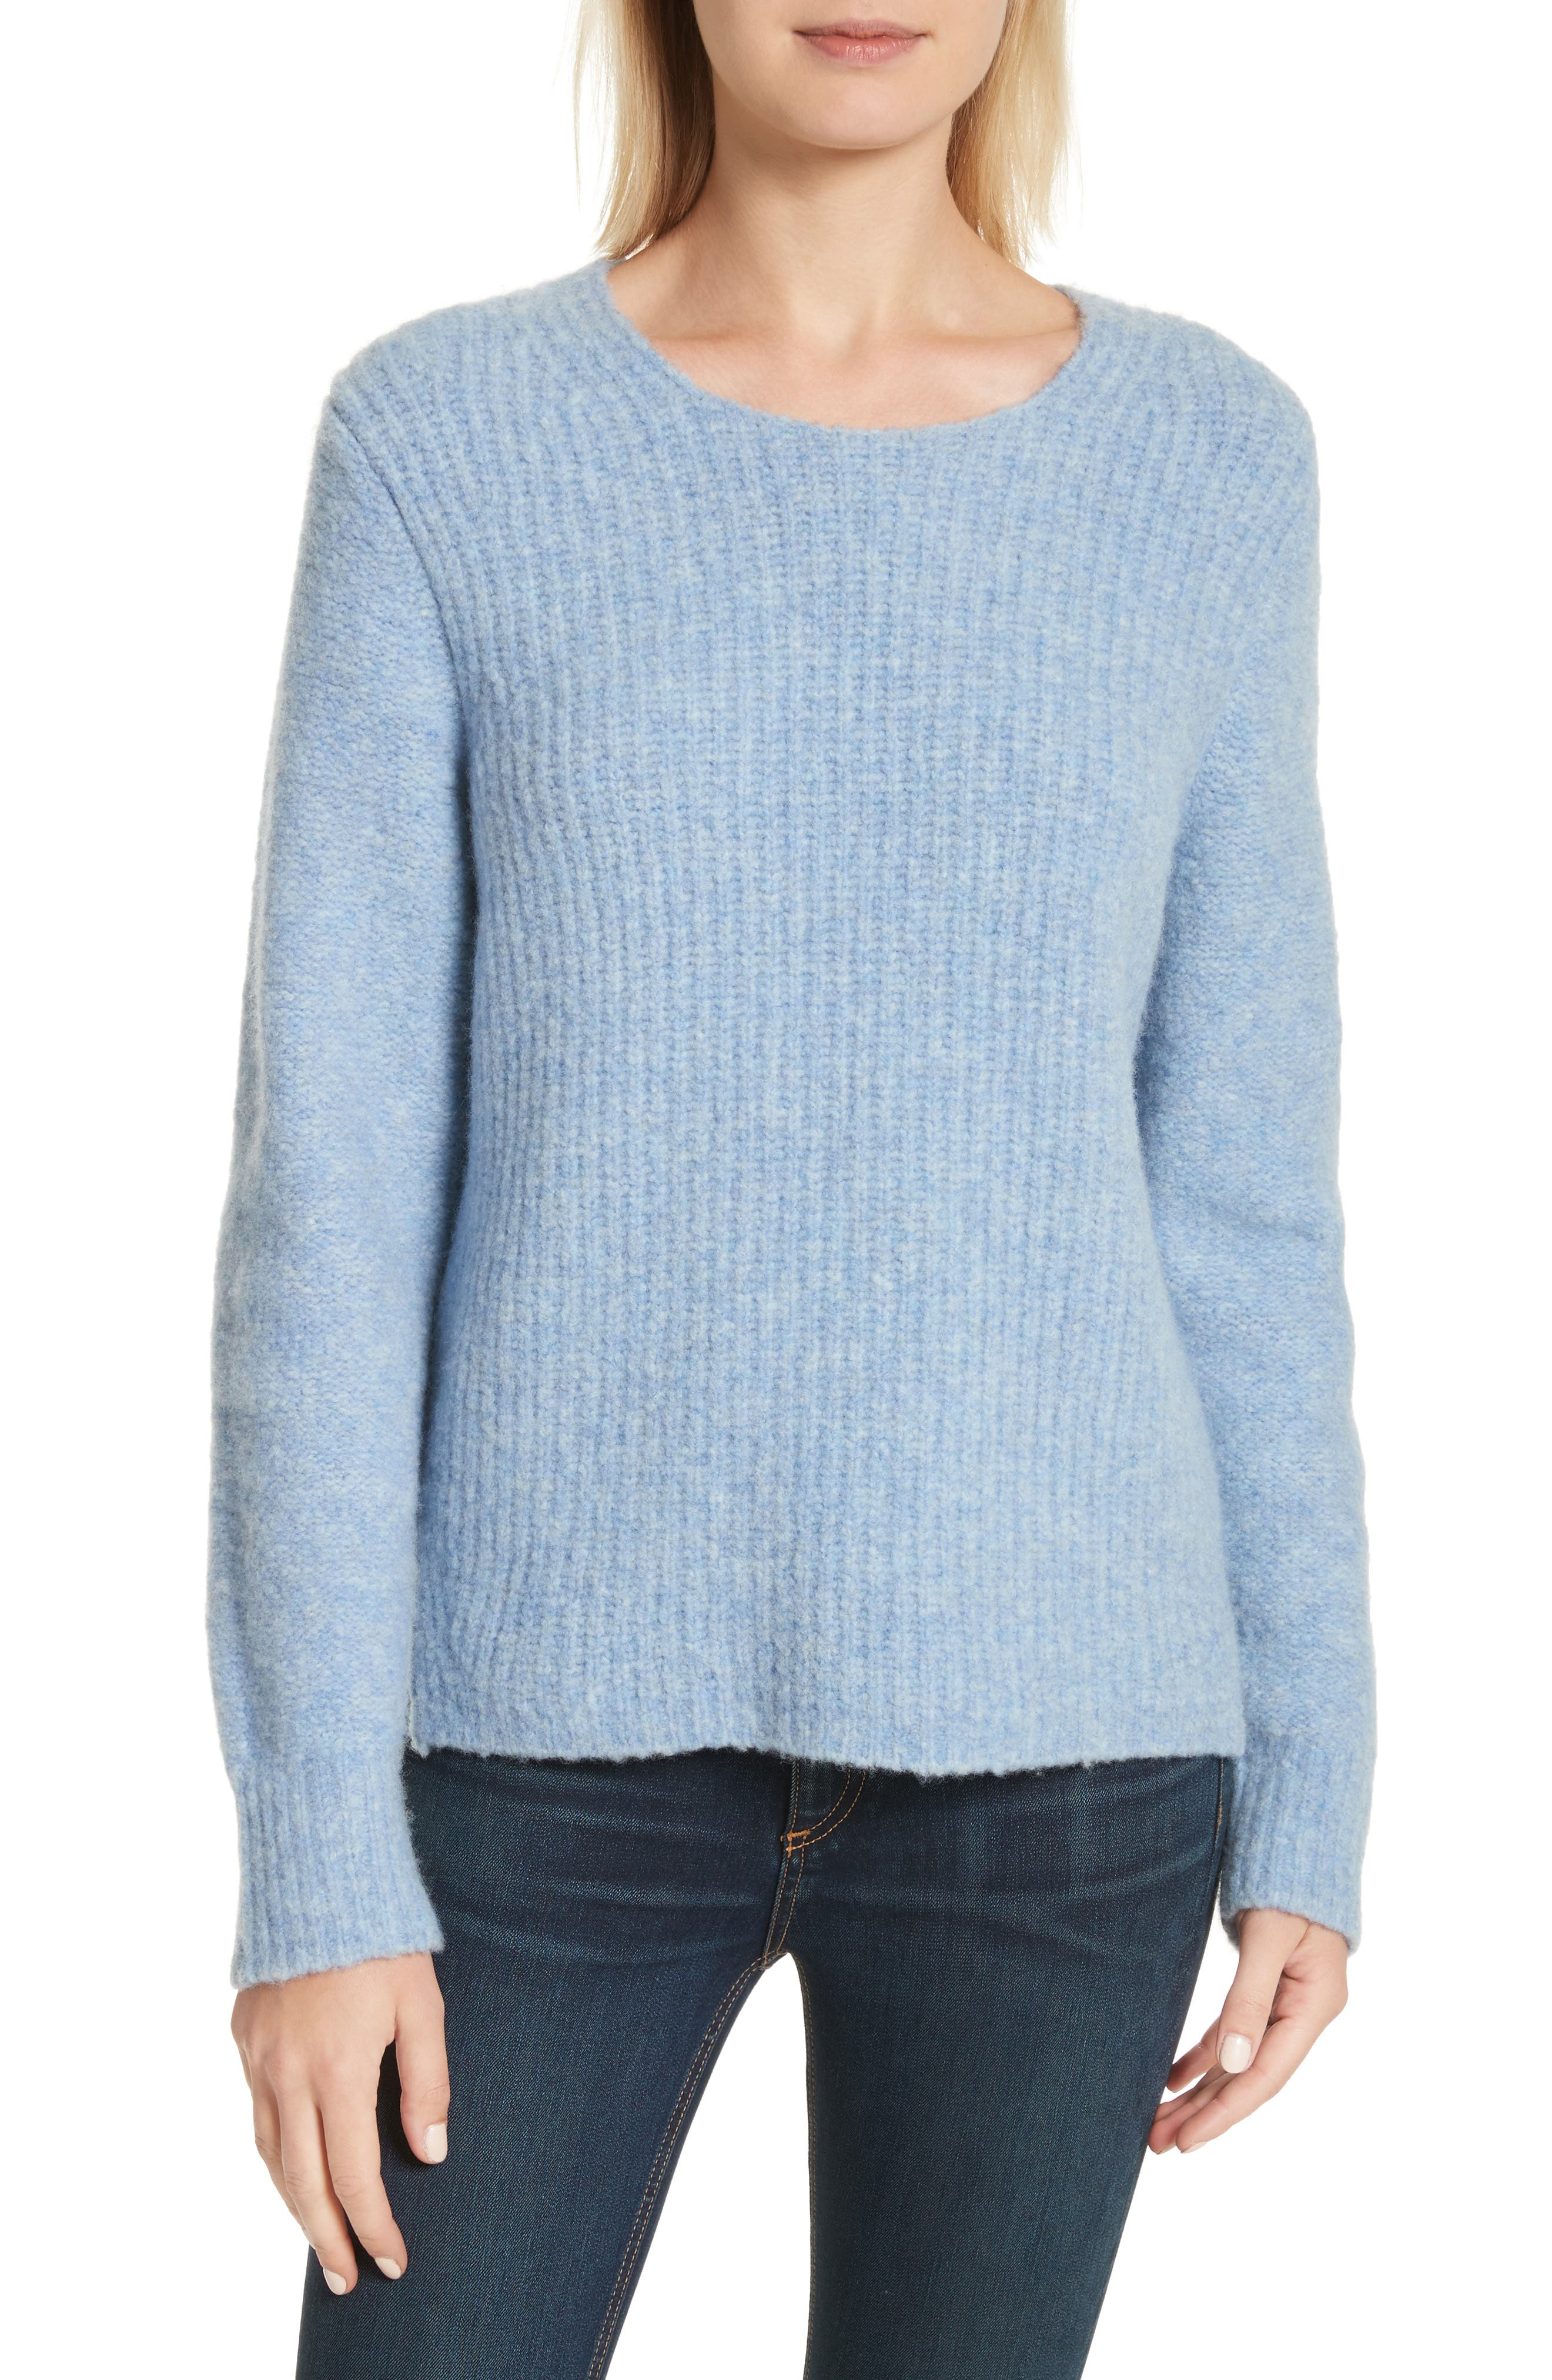 Francie Merino Wool Blend Sweater,                             Main thumbnail 1, color,                             455